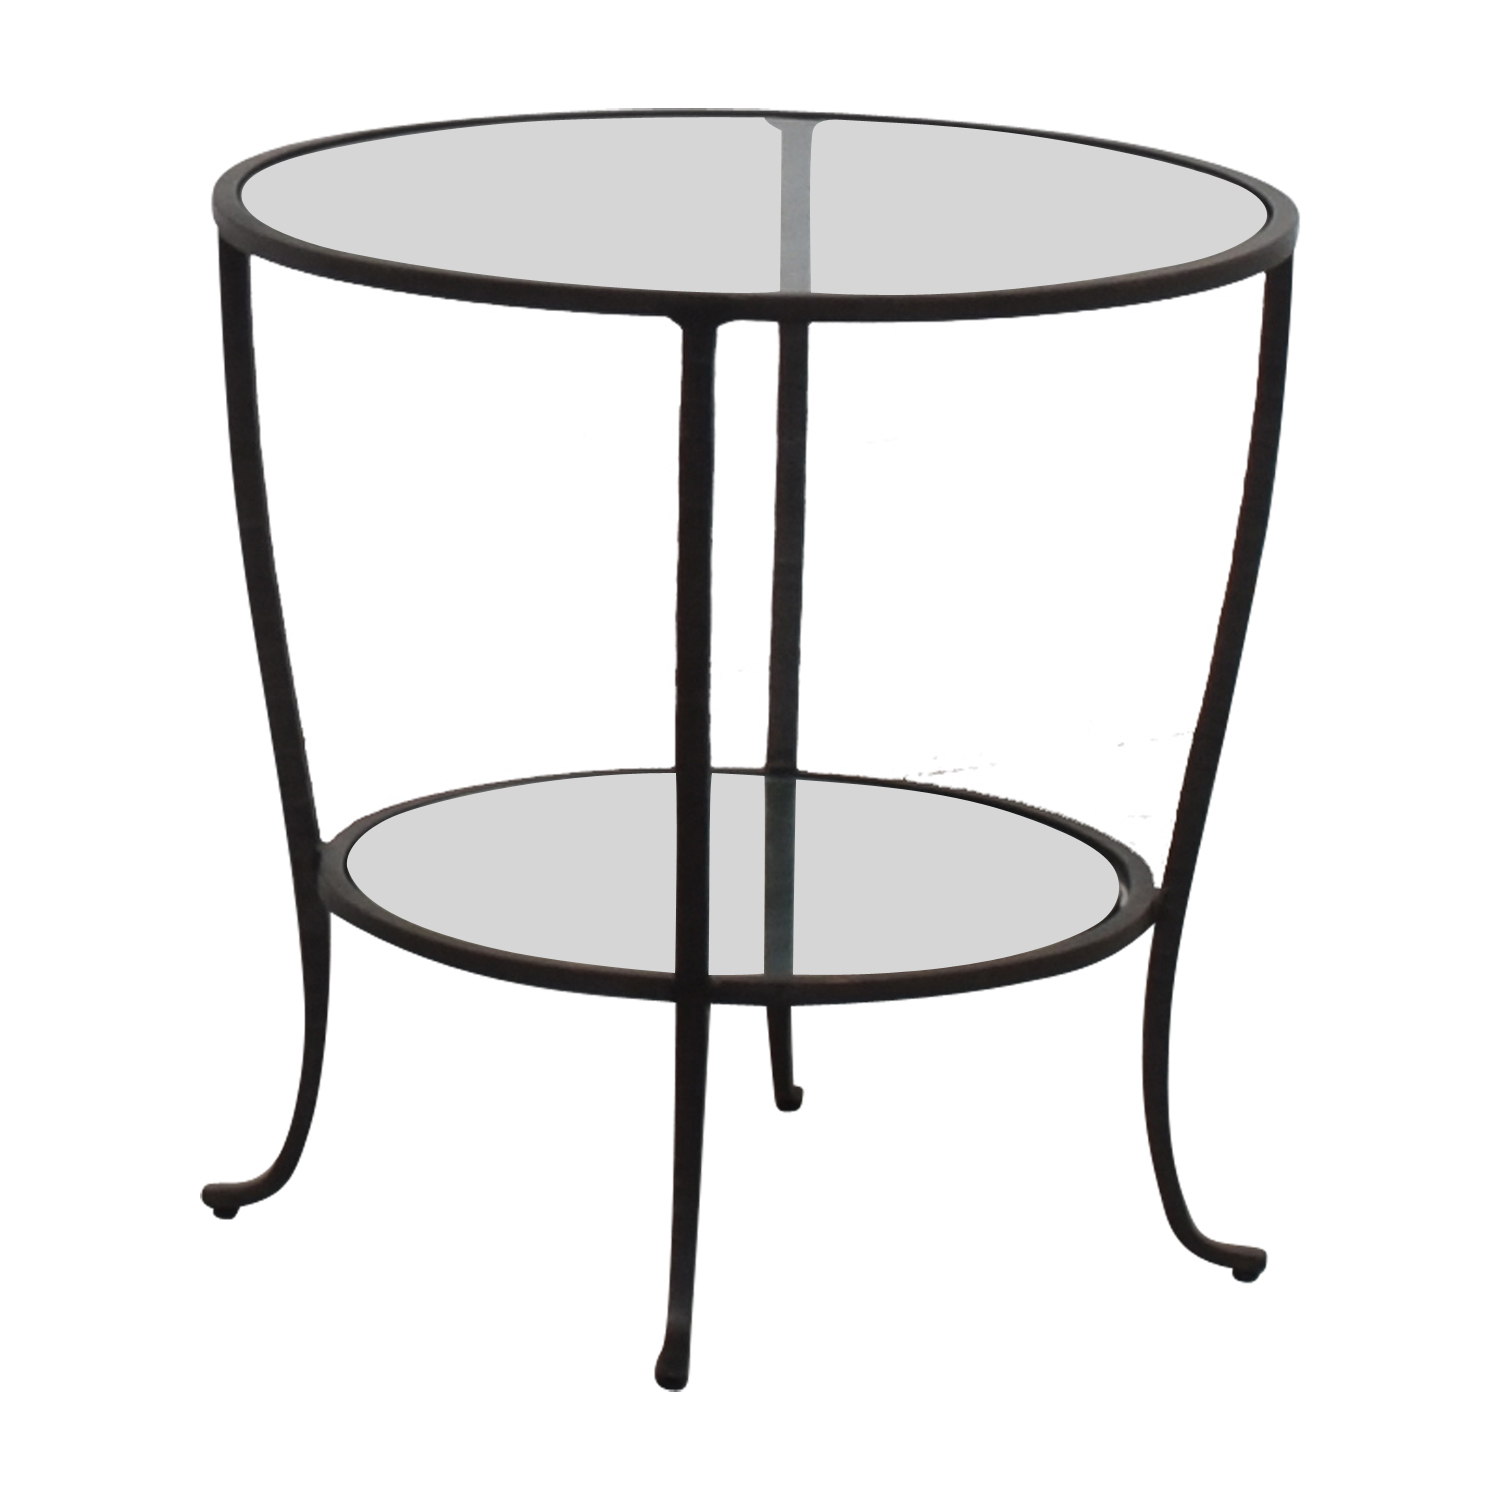 shop Pottery Barn Pottery Barn Round Metal & Glass Table online